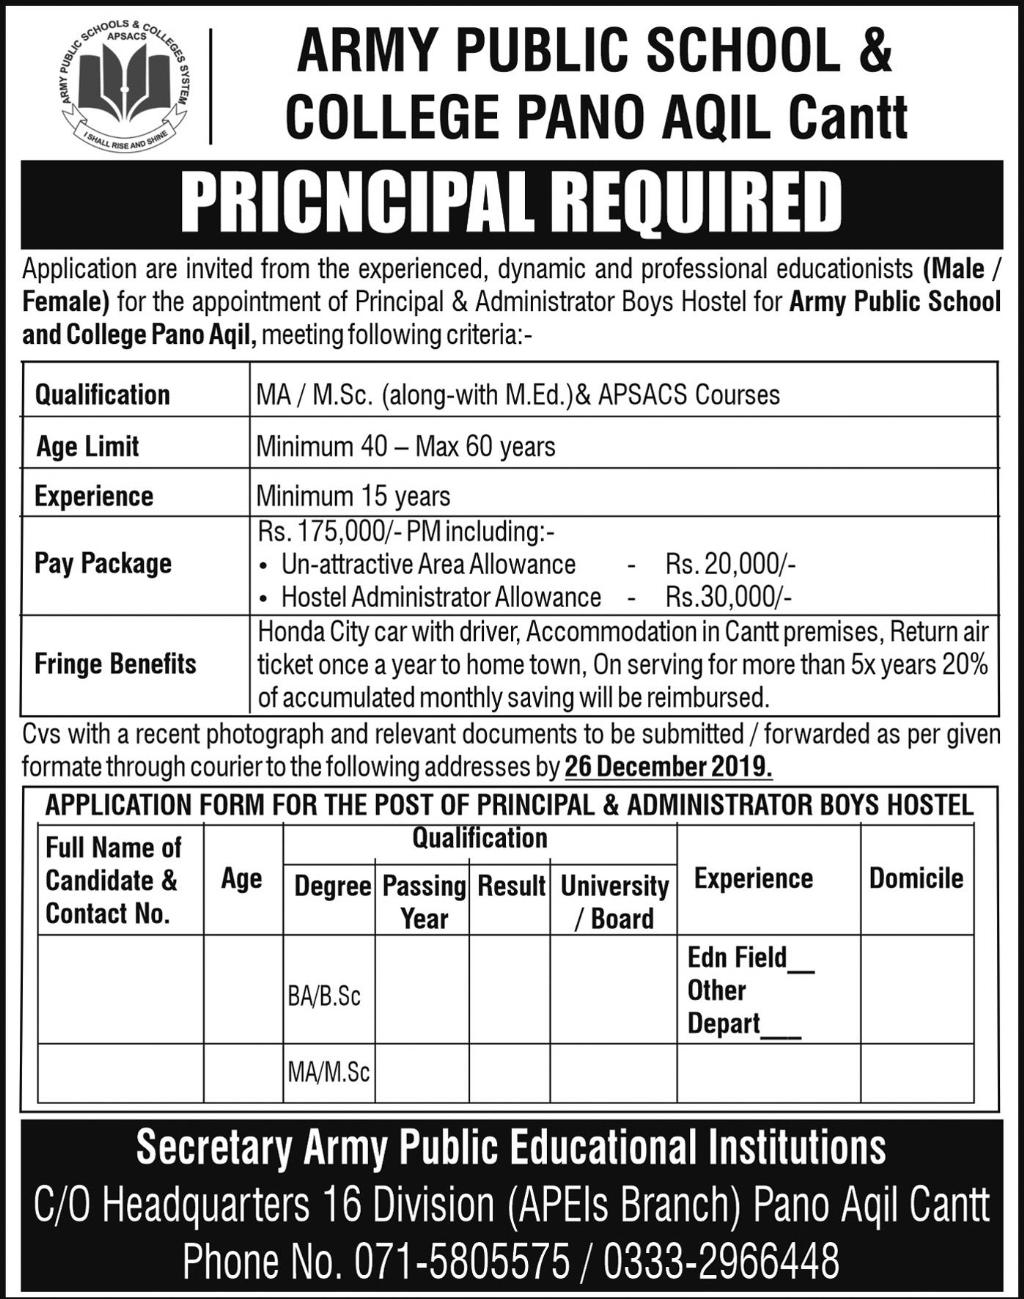 Army Public School & College Teaching Posts Pano Aqil 2019